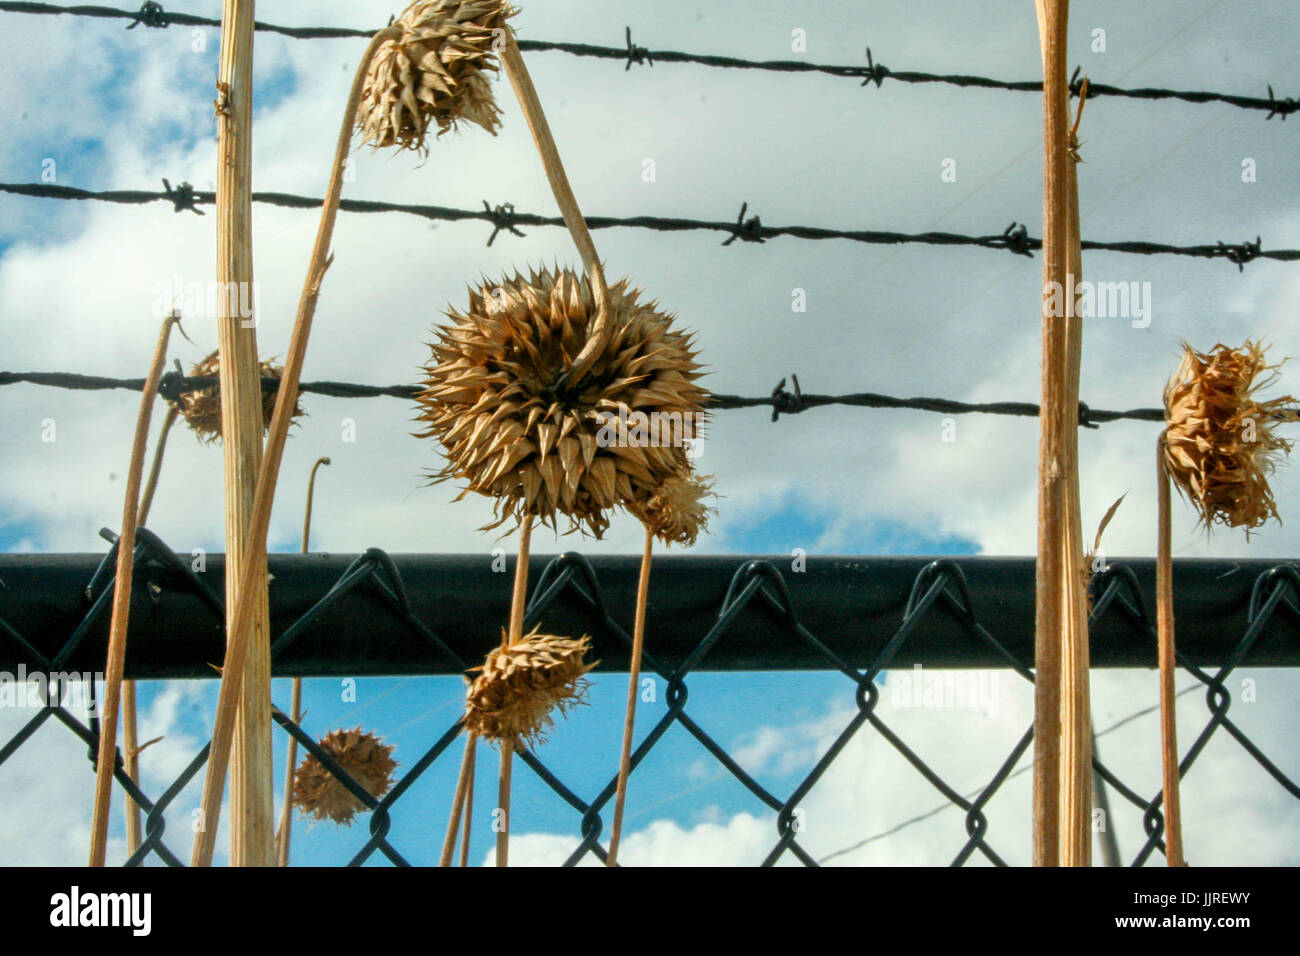 Dried Plants and Barbed Wire Fence - Stock Image